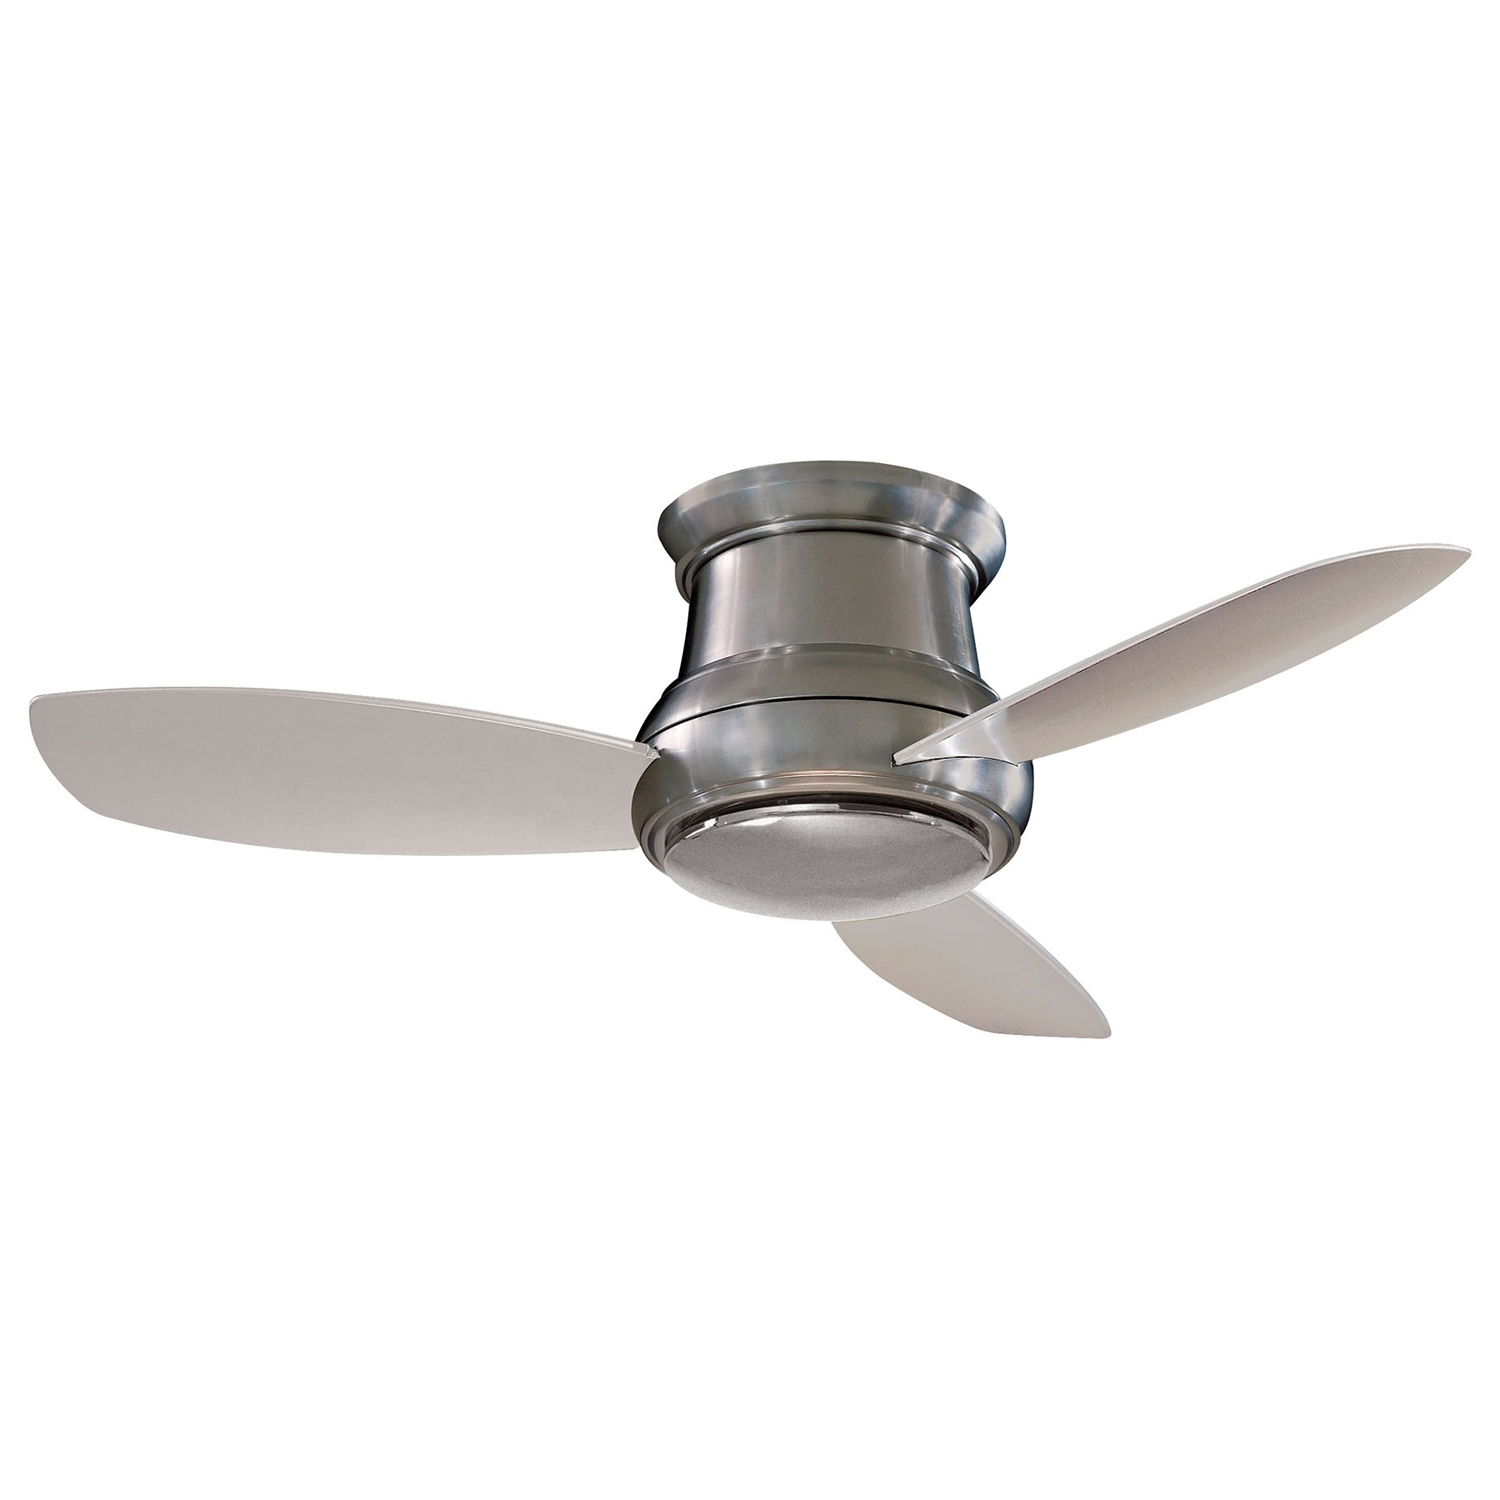 20 Collection of 24 Inch Outdoor Ceiling Fans With Light